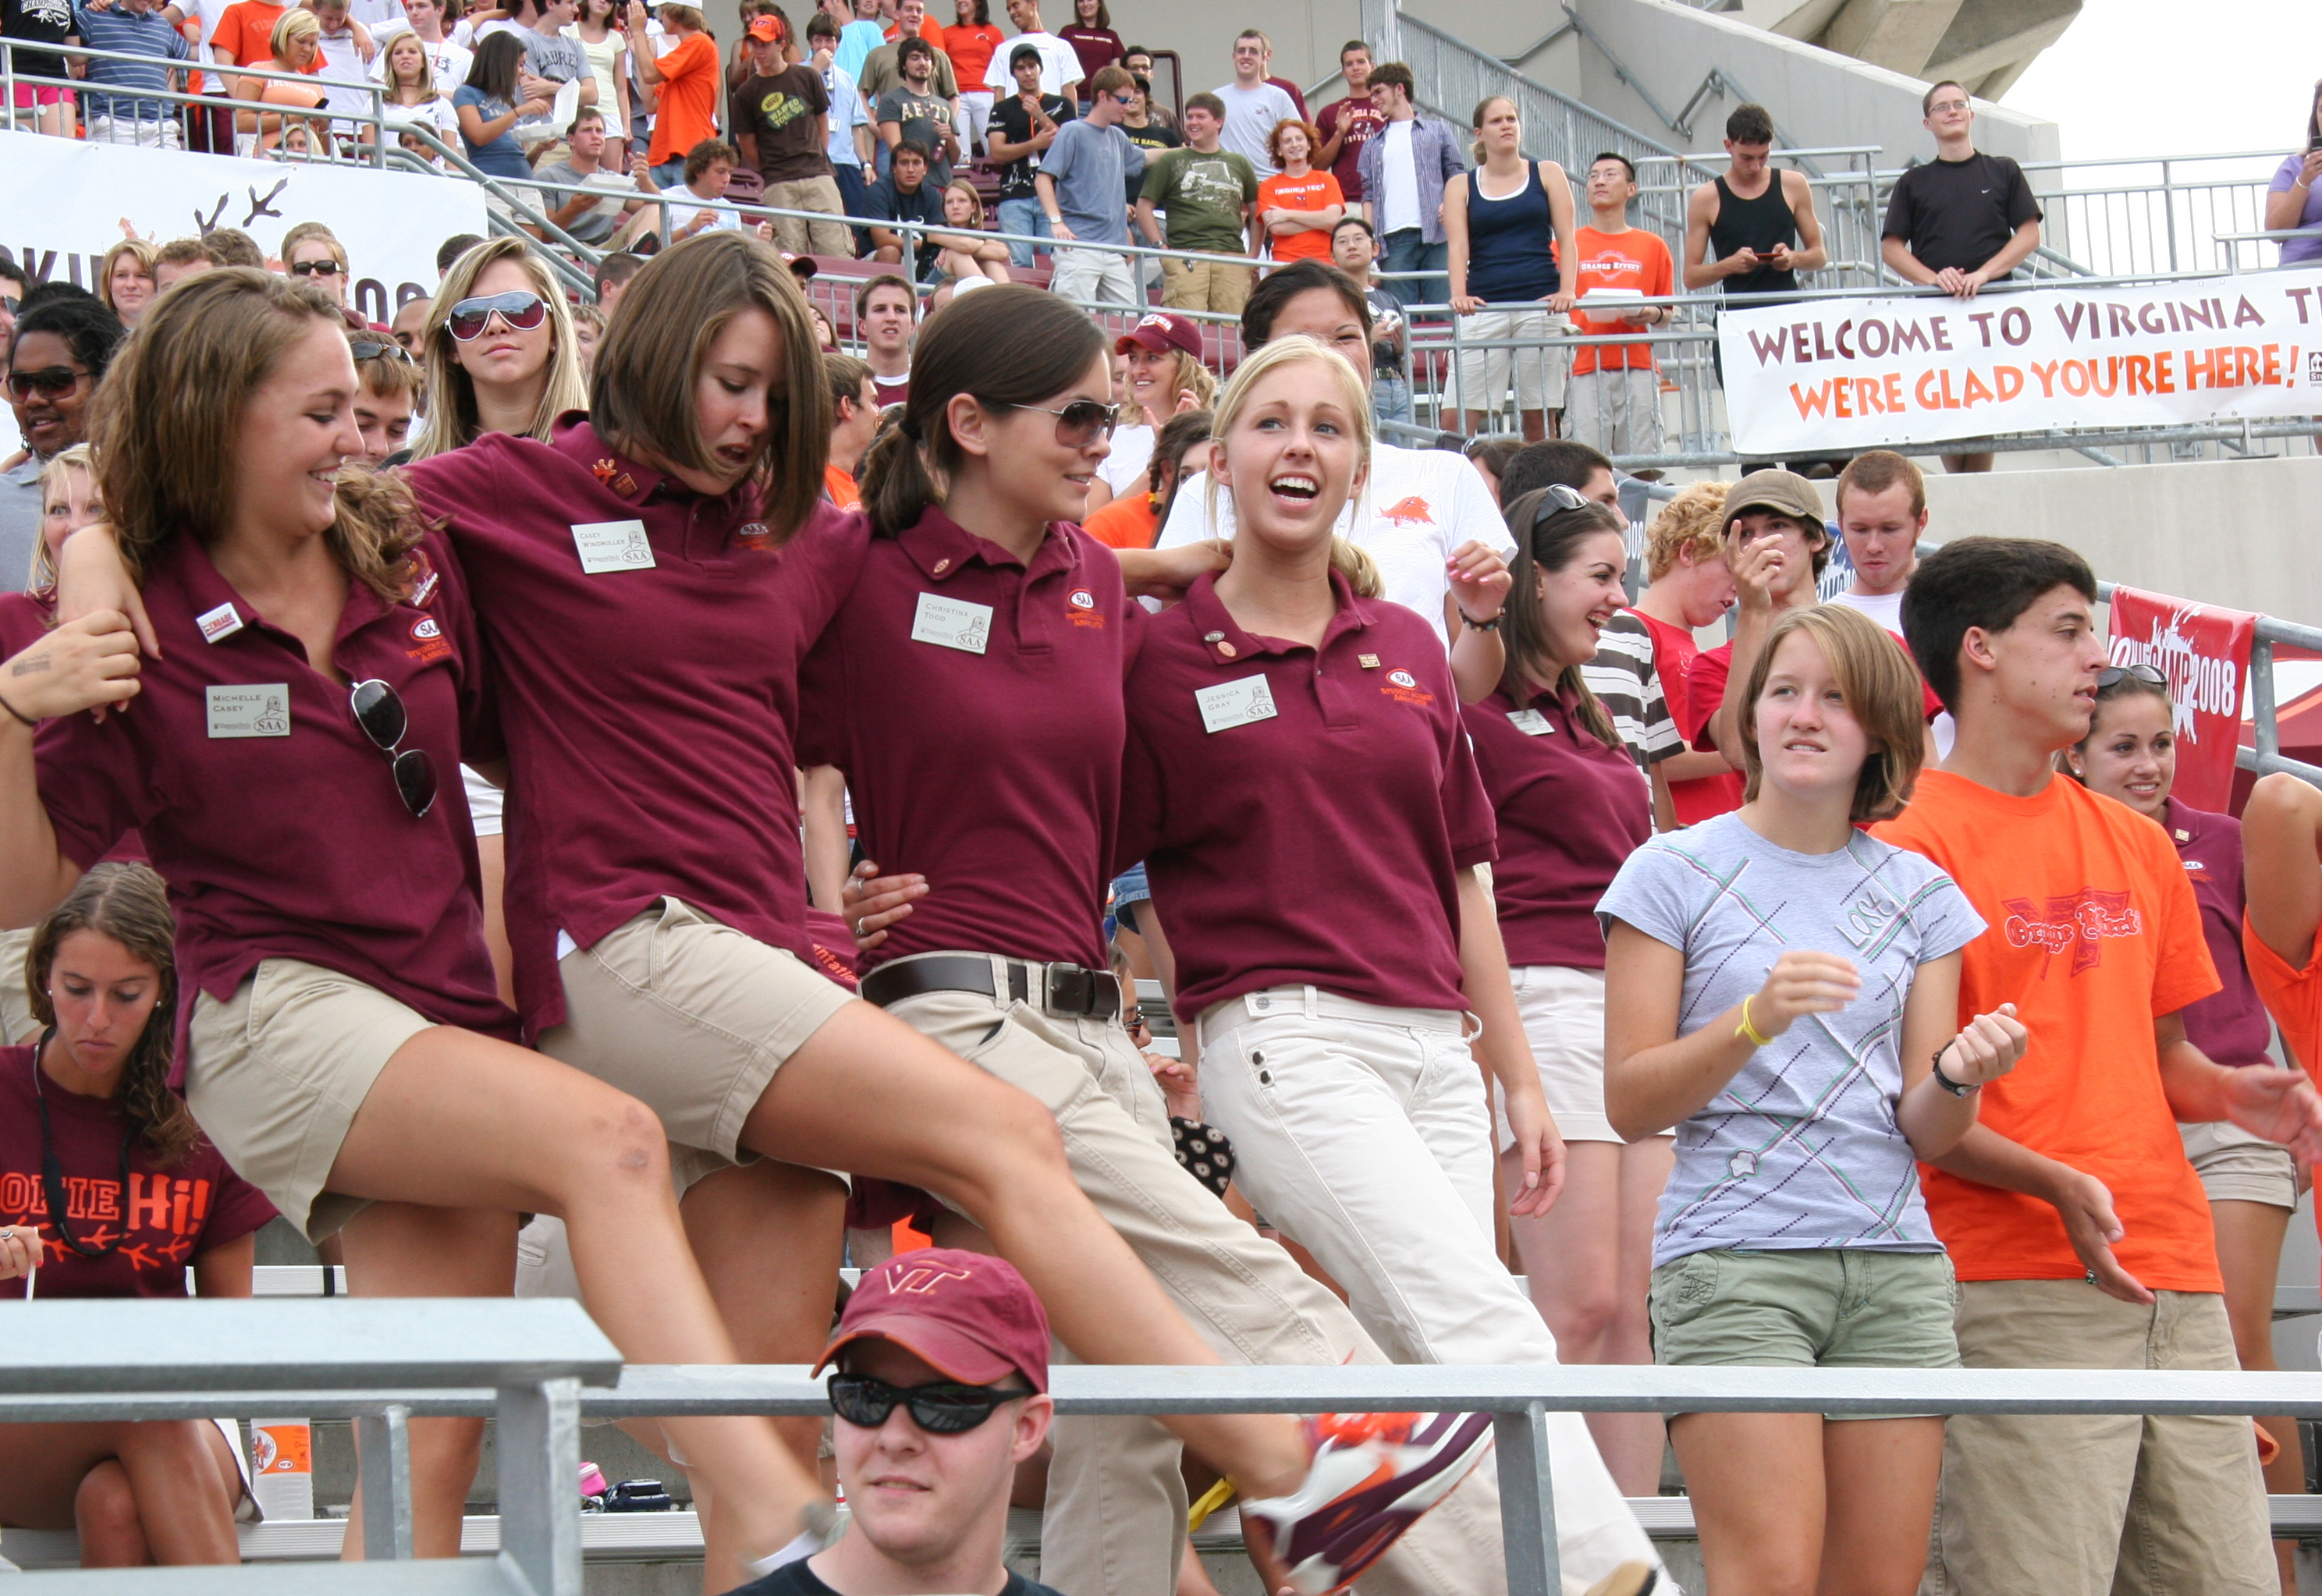 The Hokie Spirit Picnic is on Aug. 23